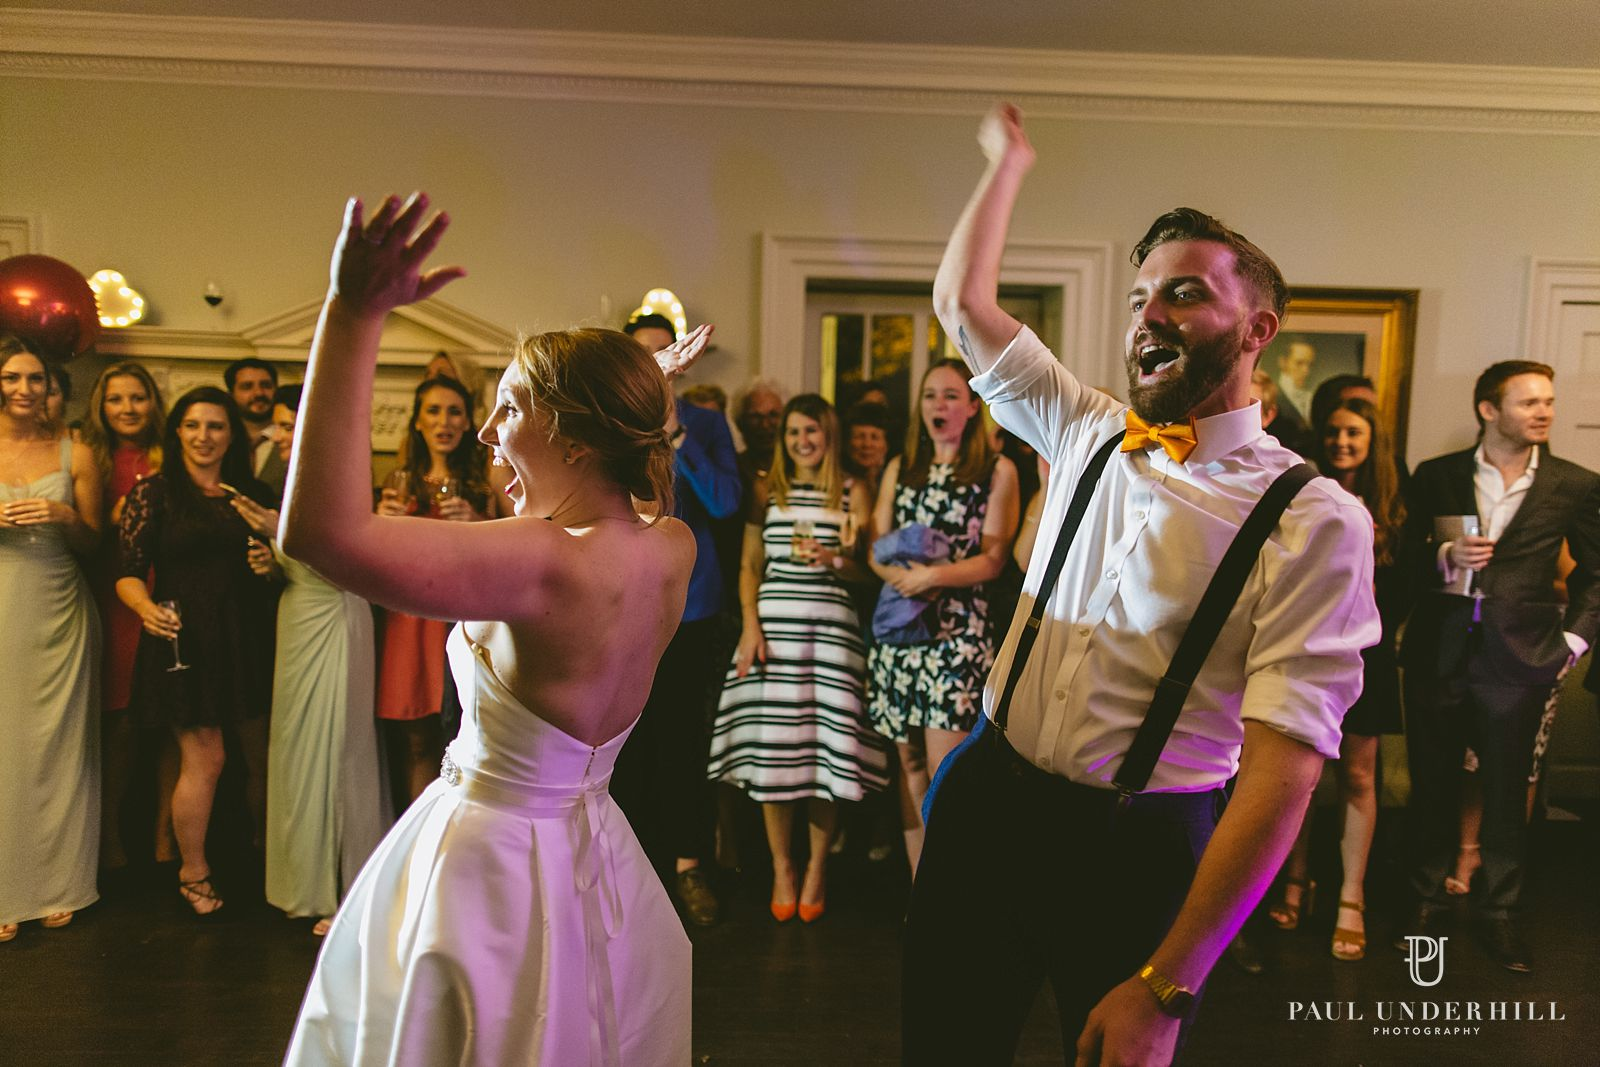 fun-moments-captured-london-wedding